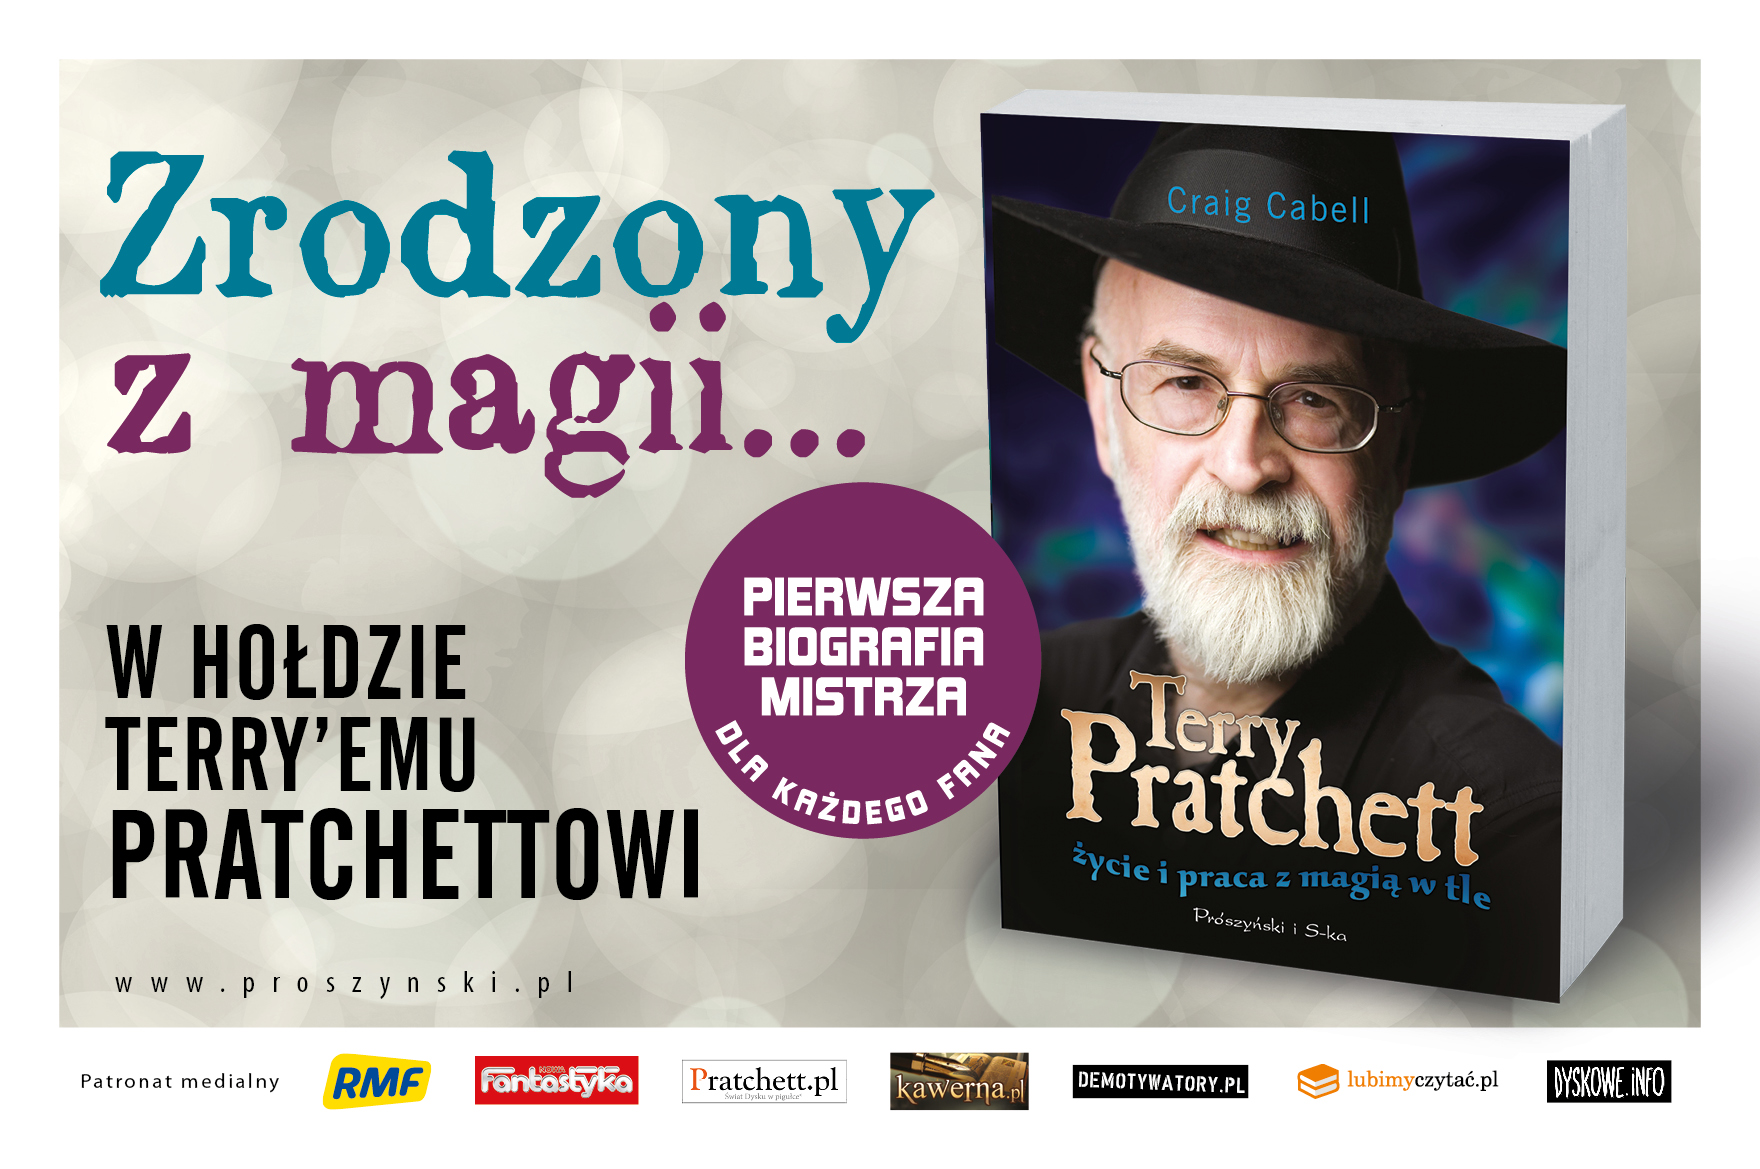 Pratchett biografia billboard